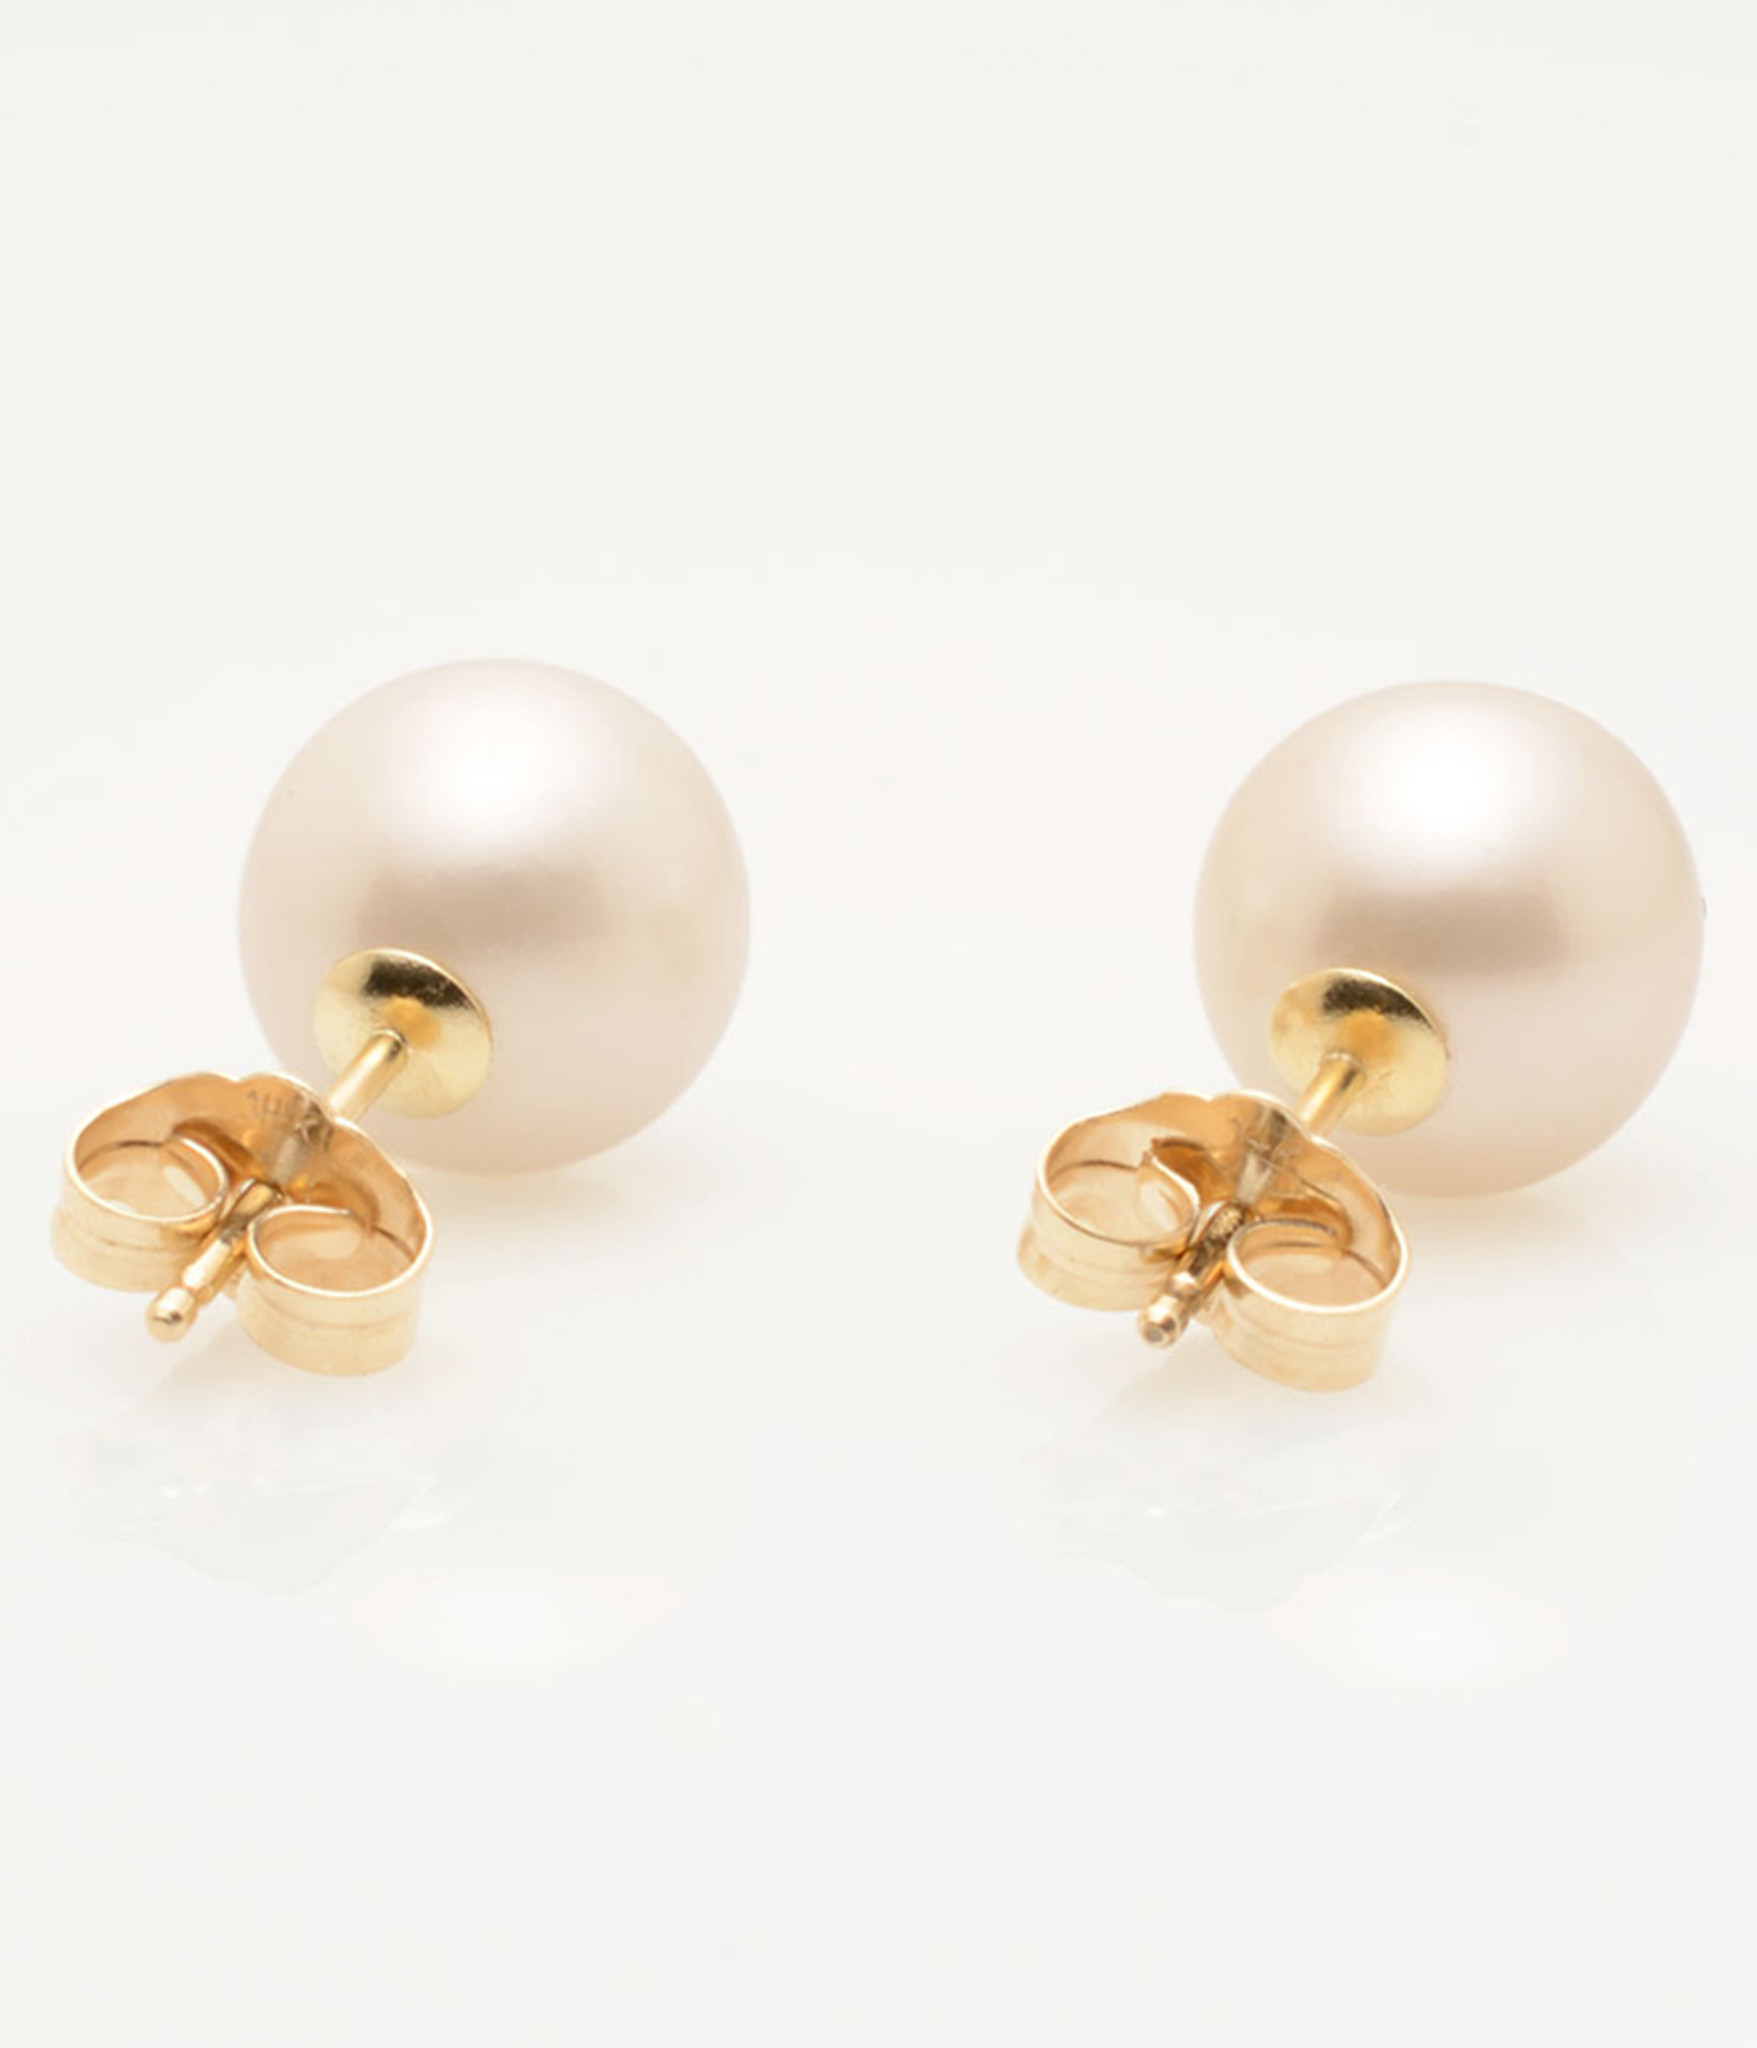 Back view of Cultured Freshwater Pearl Earrings with 14k Gold XO Emoji (8-9 mm) by Nektar De Stagni